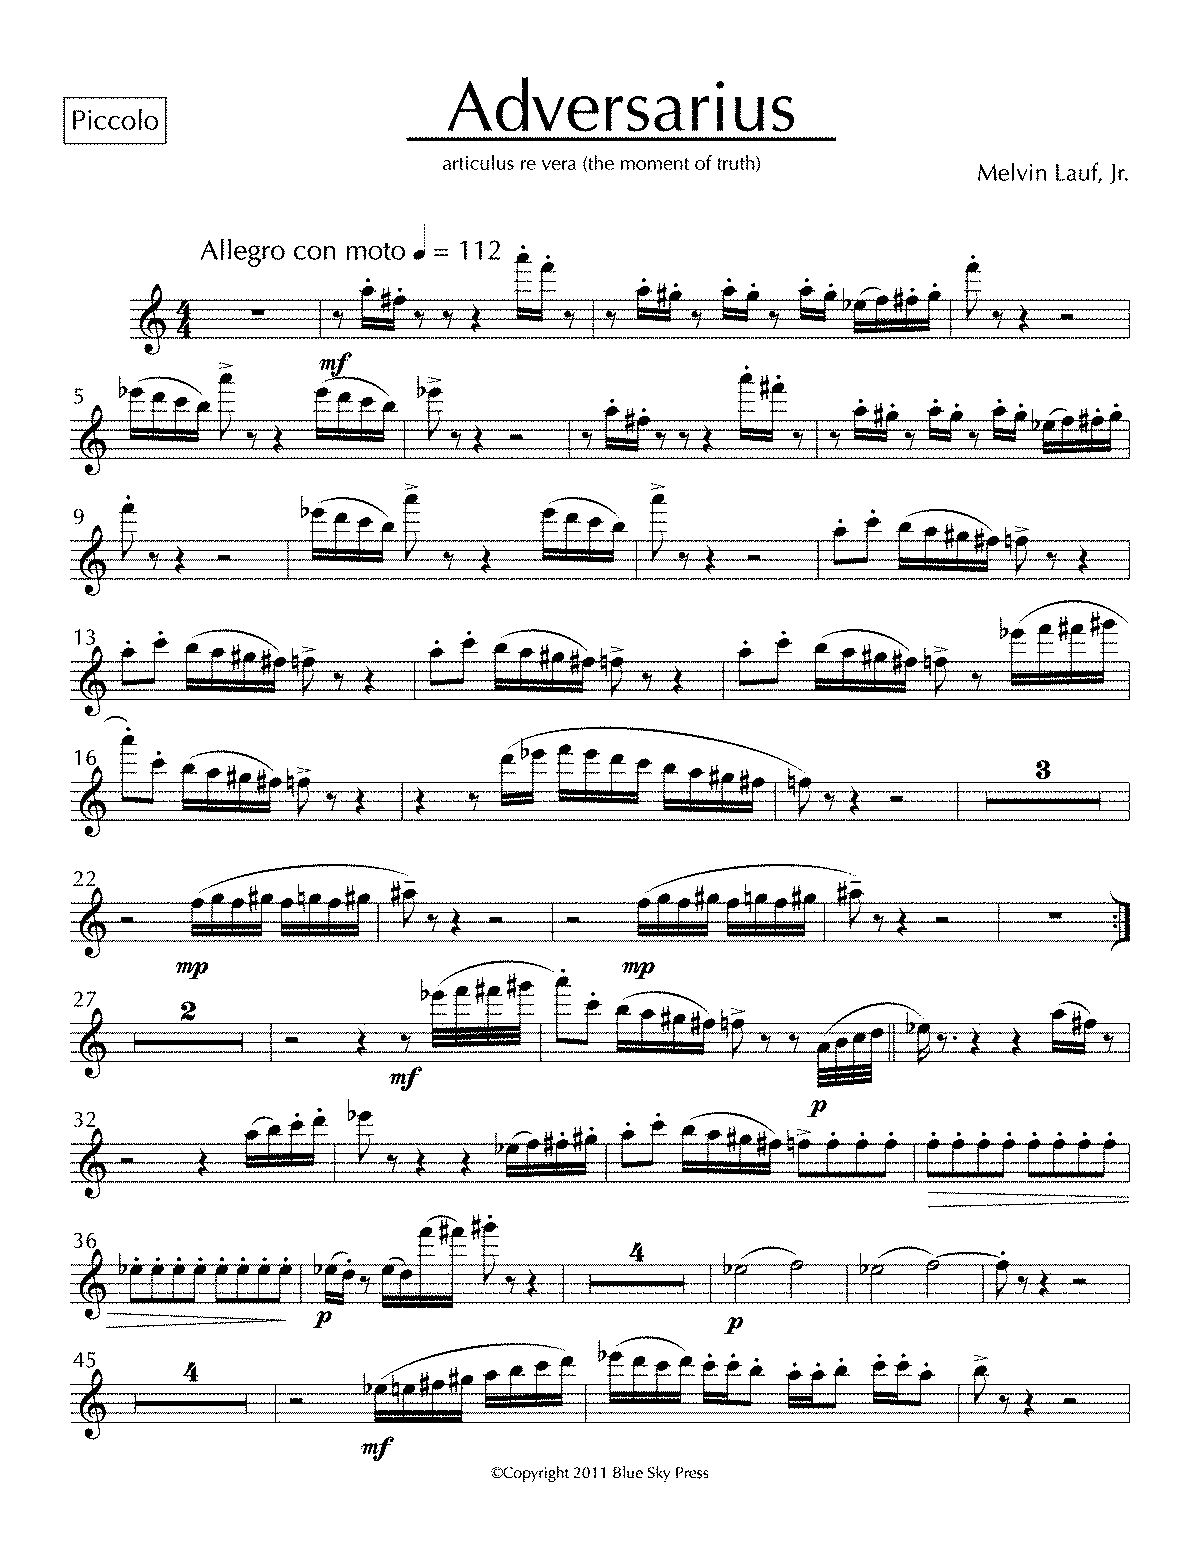 PMLP482956-01-Adversarius - Piccolo.pdf